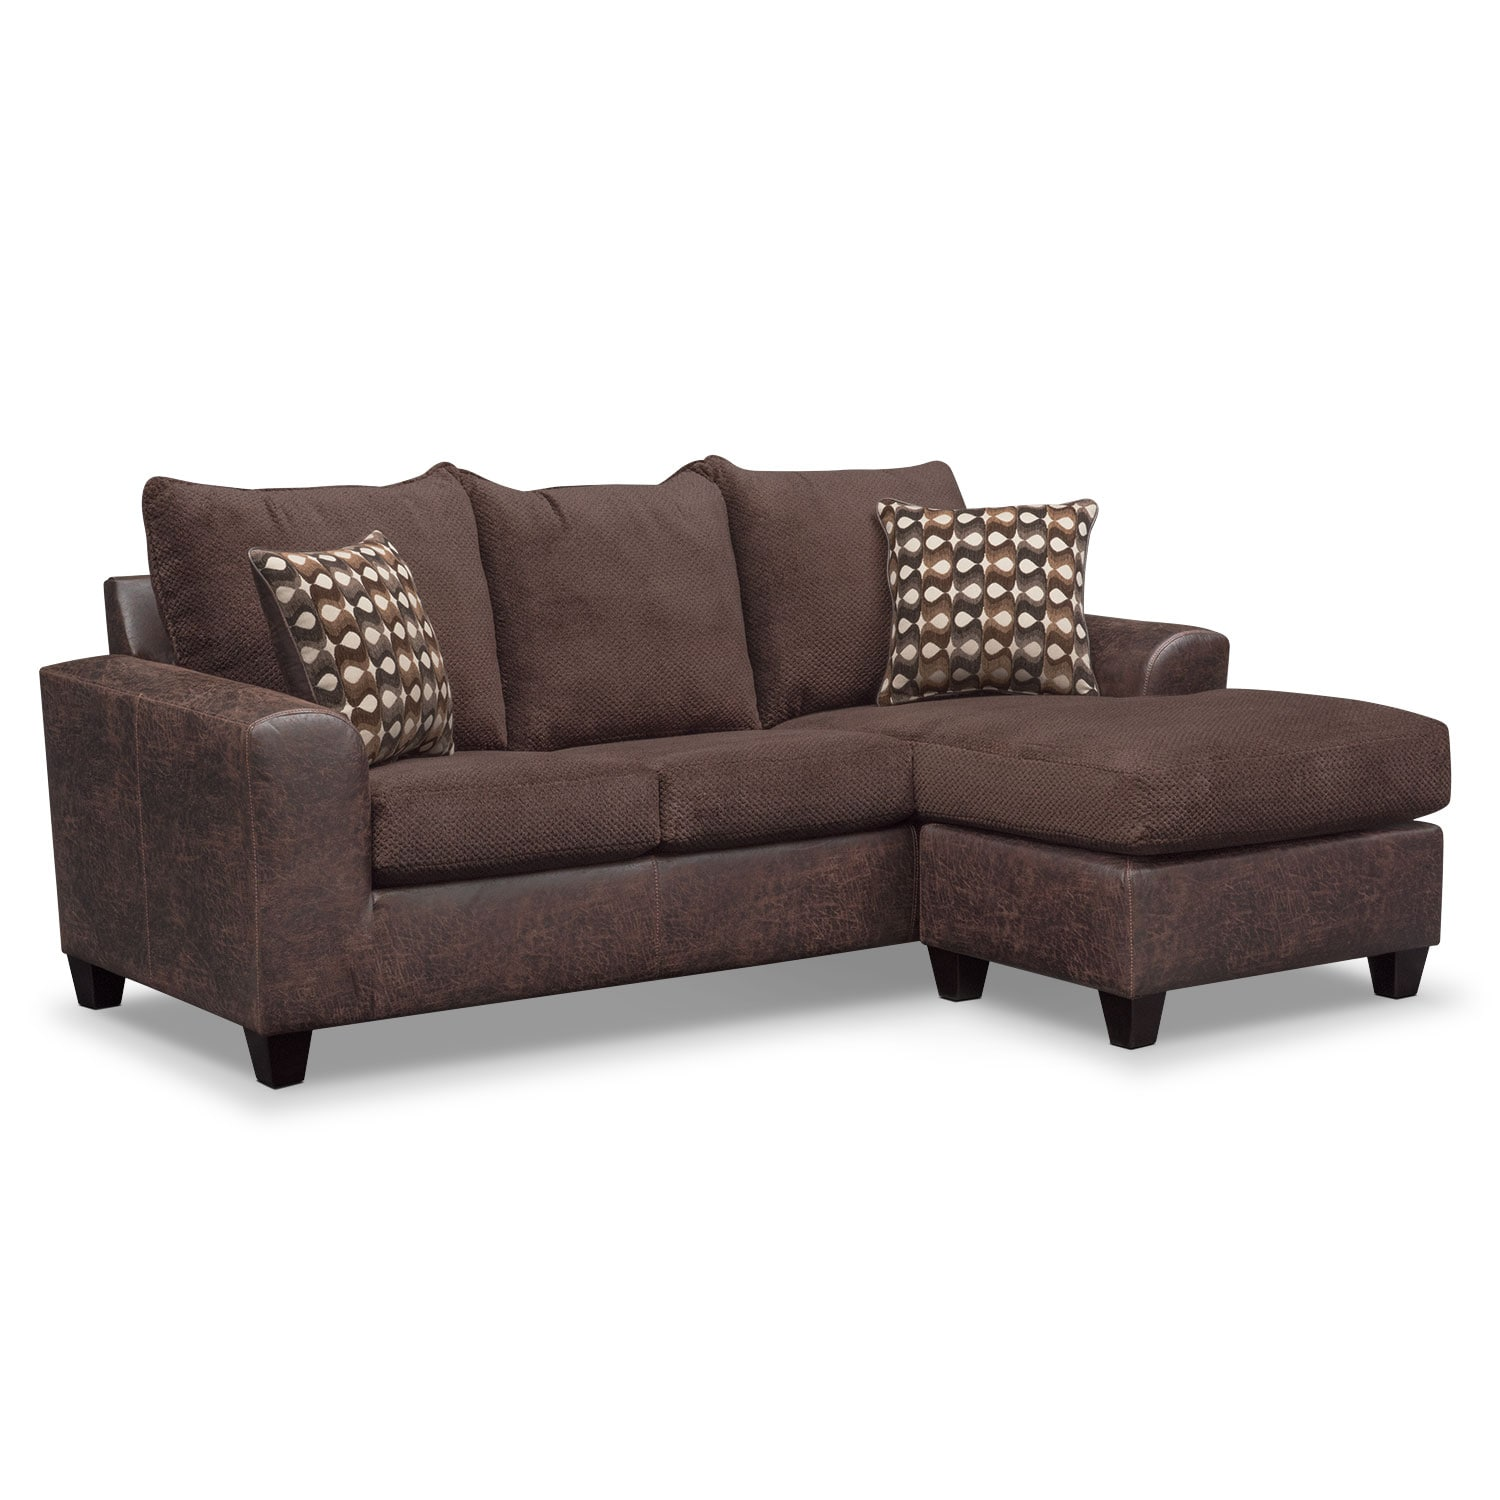 brando sofa with chaise chocolate value city furniture. Black Bedroom Furniture Sets. Home Design Ideas